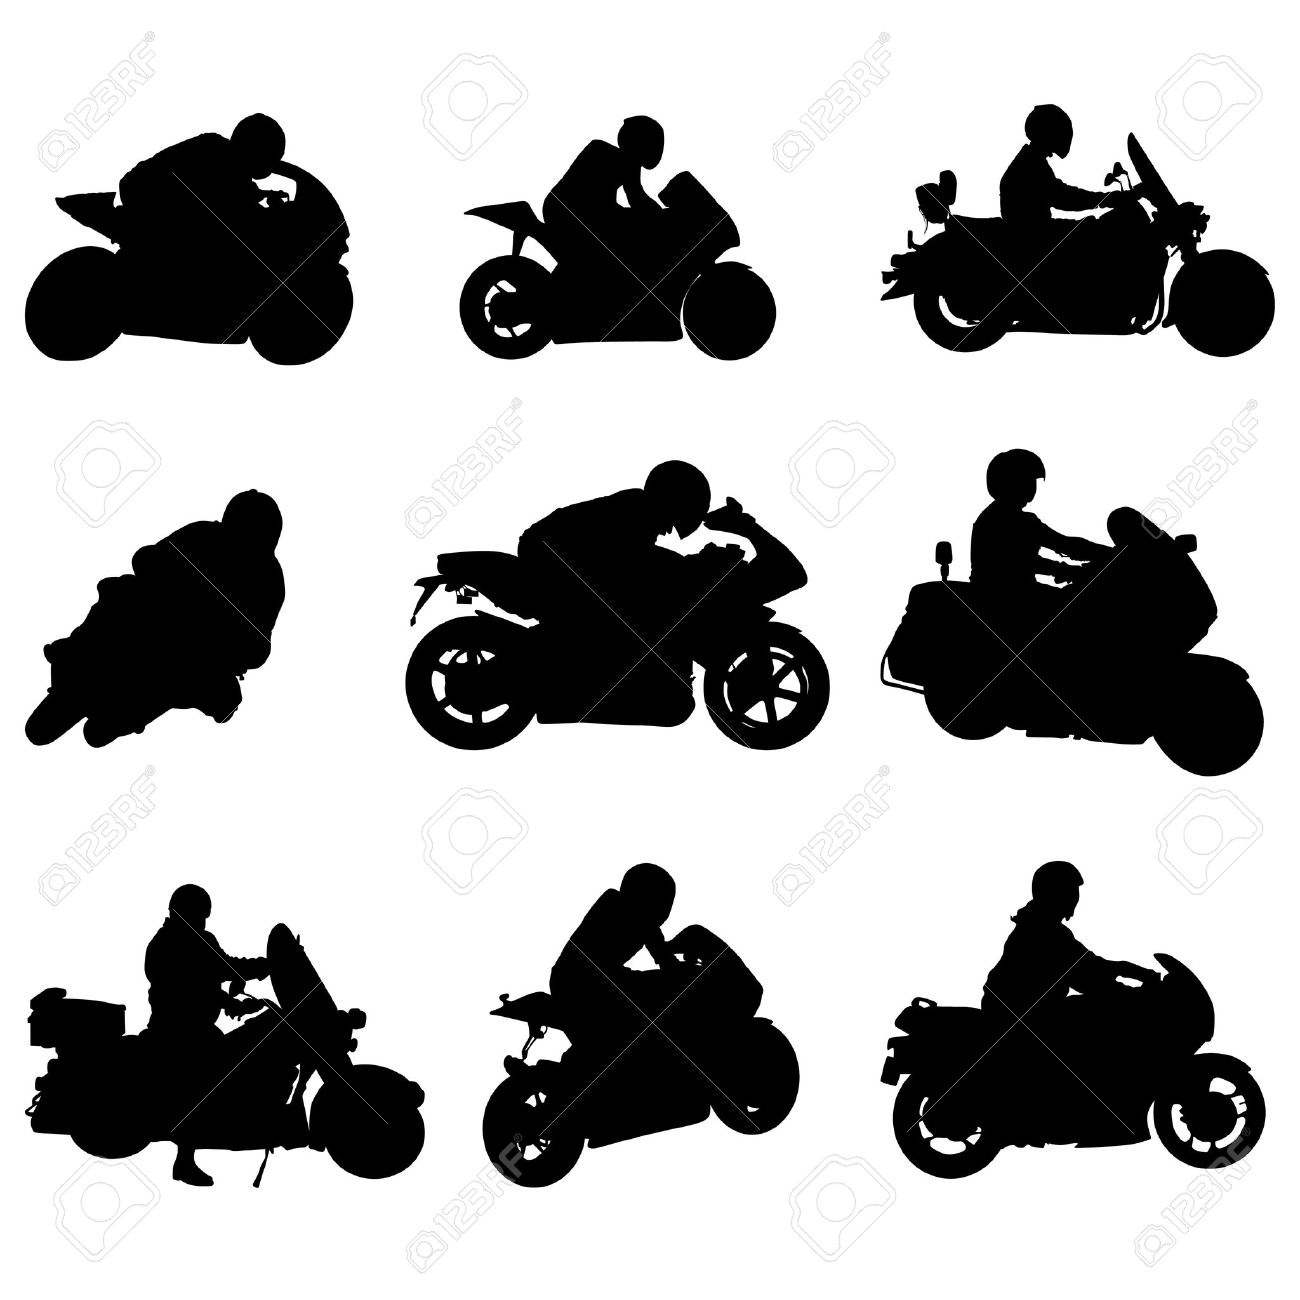 1300x1300 Motorcycle Set Stock Vector Motorcycle Silhouette Rider